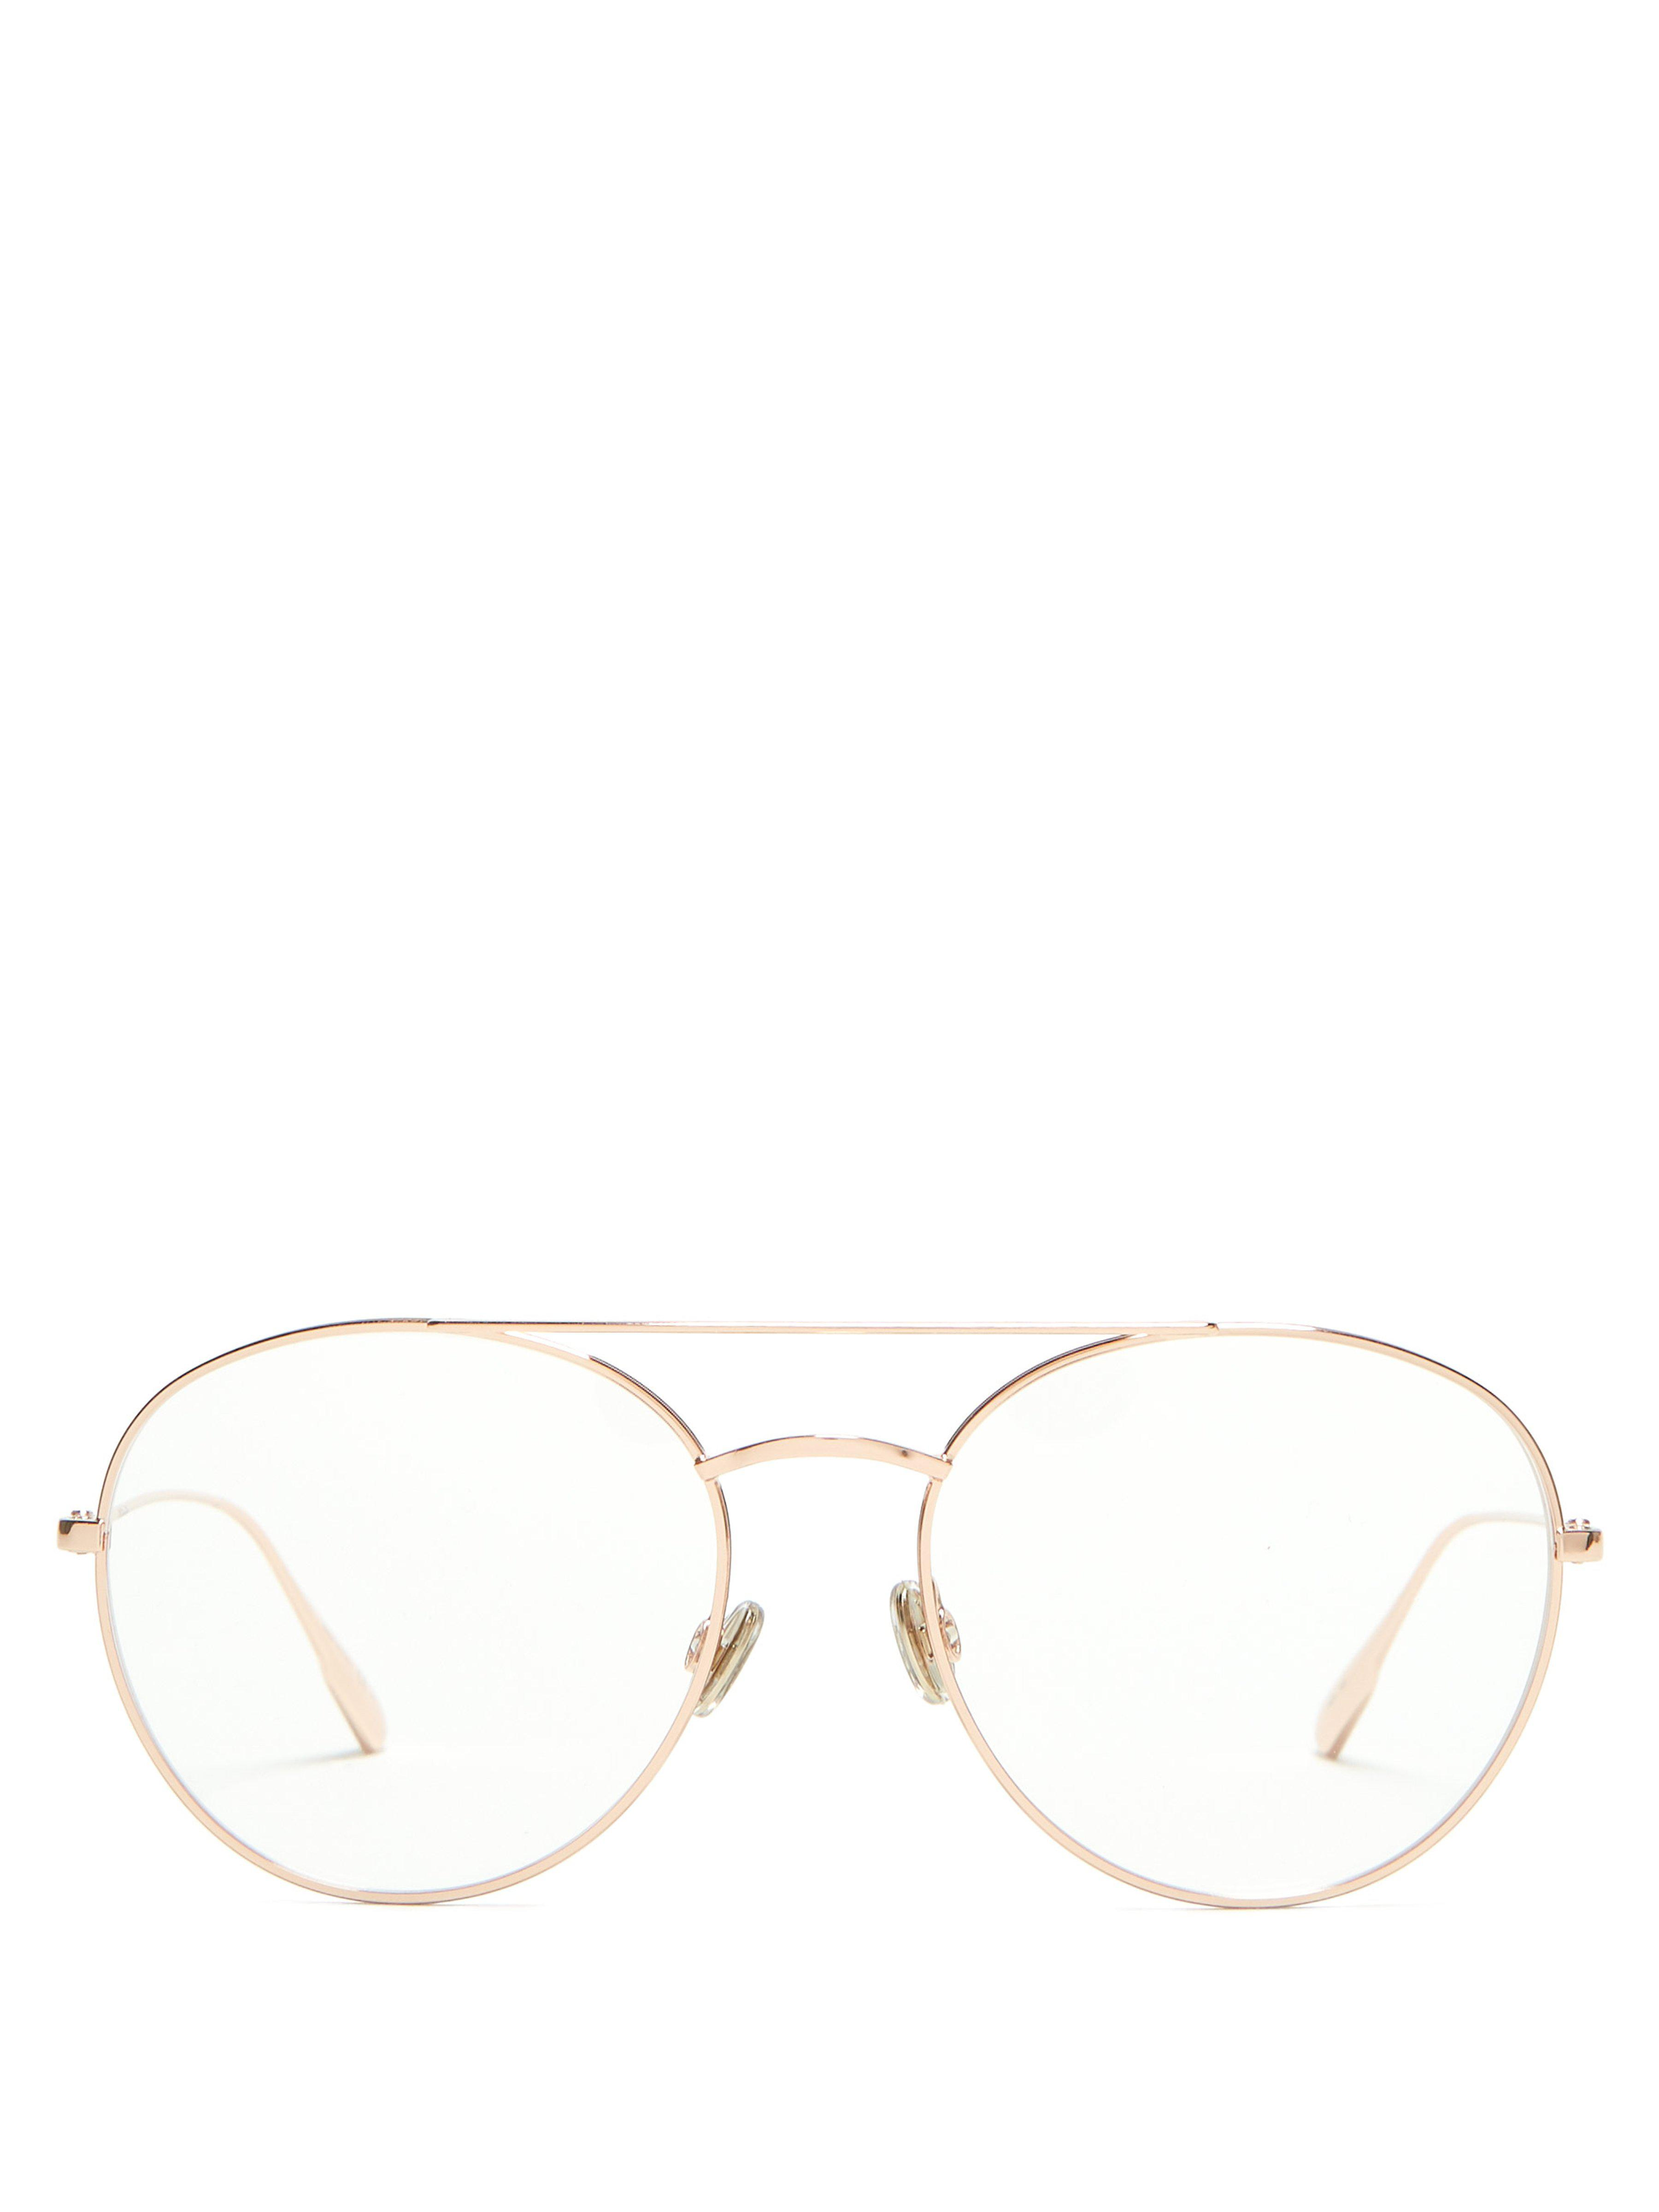 64bace9bc0d7 Dior Diorstellaire05 Rounded Metal Glasses in Metallic - Lyst